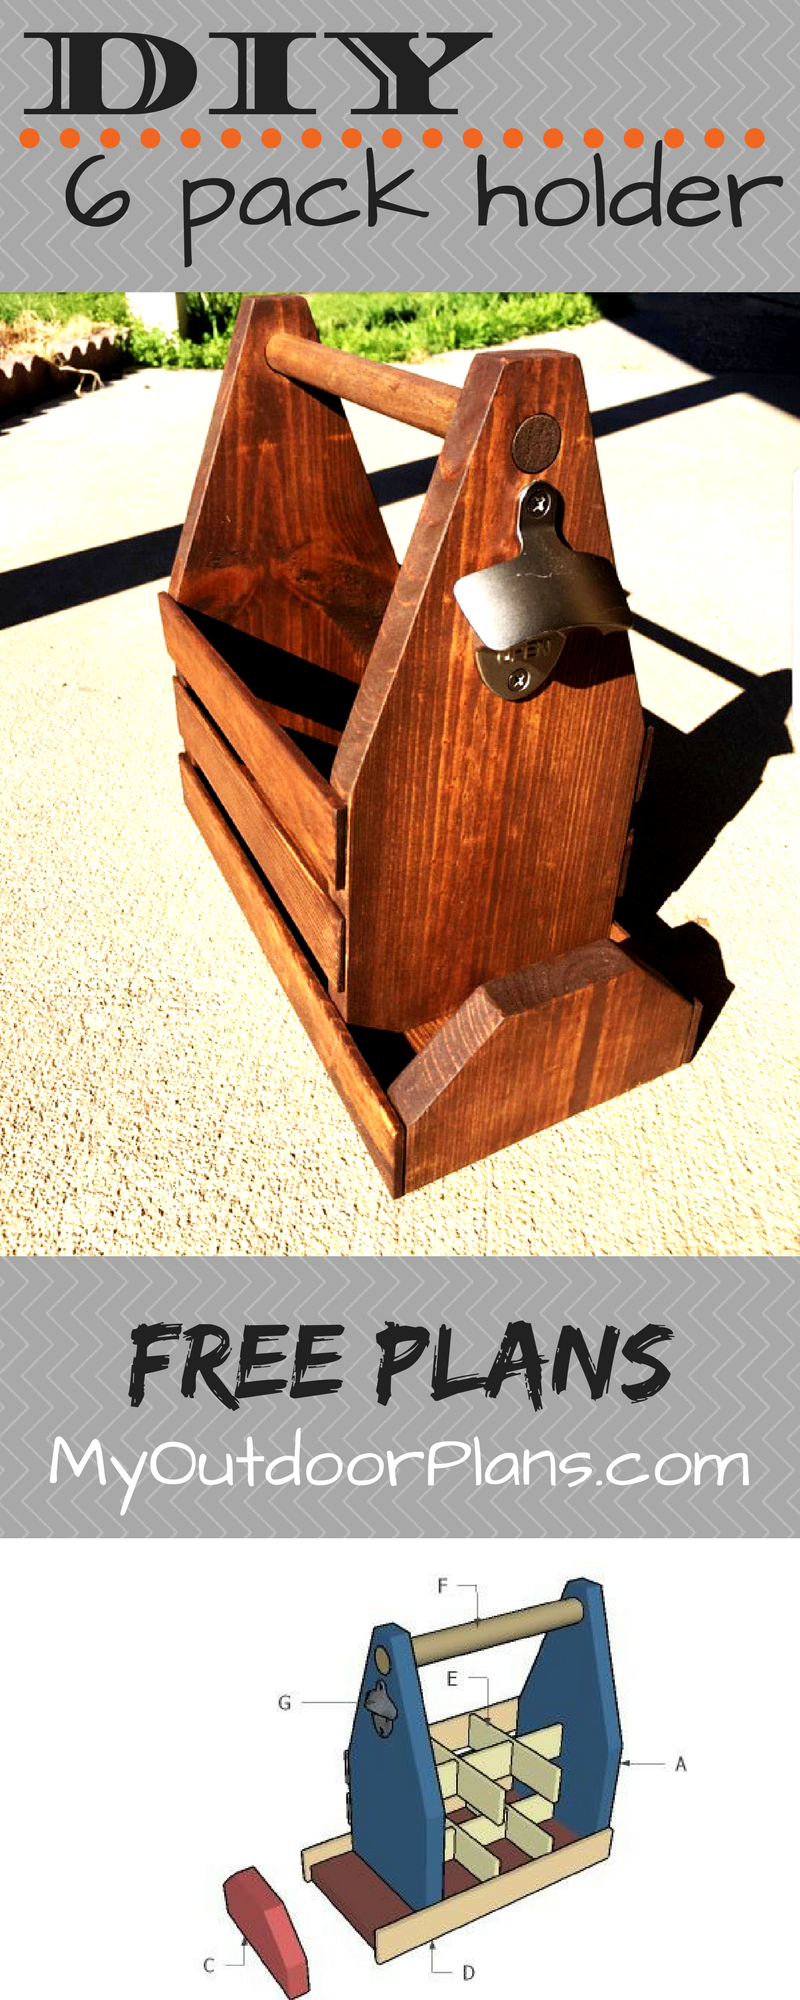 Free Plans For Building A 6 Pack Beer Holder With Opener And Cap